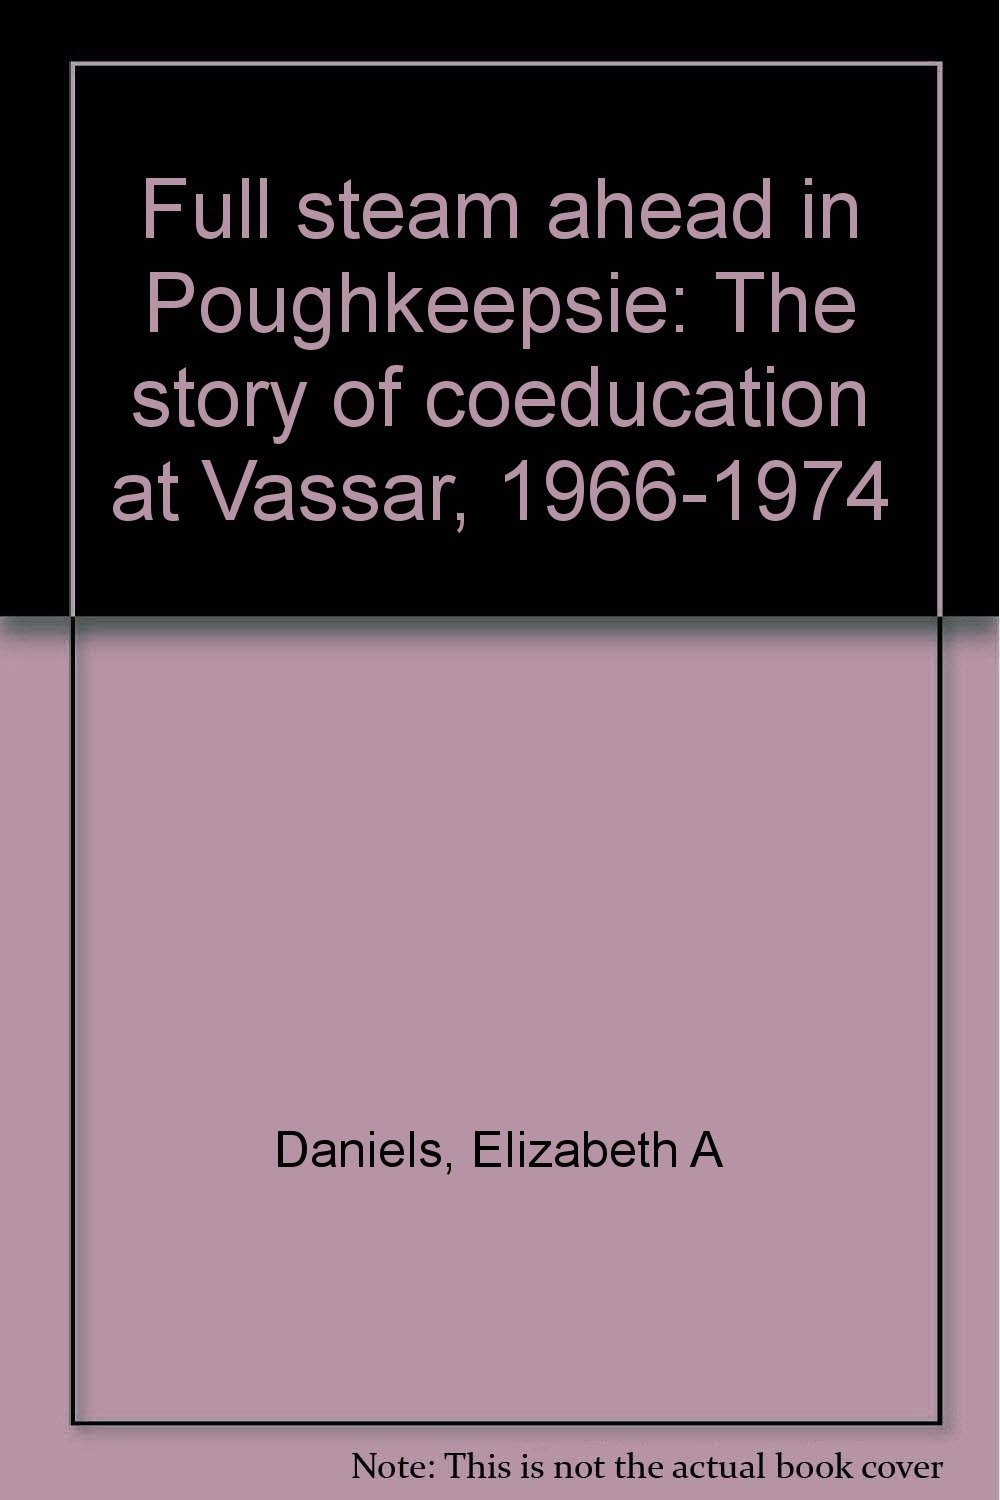 Download Full steam ahead in Poughkeepsie: The story of coeducation at Vassar, 1966-1974 pdf